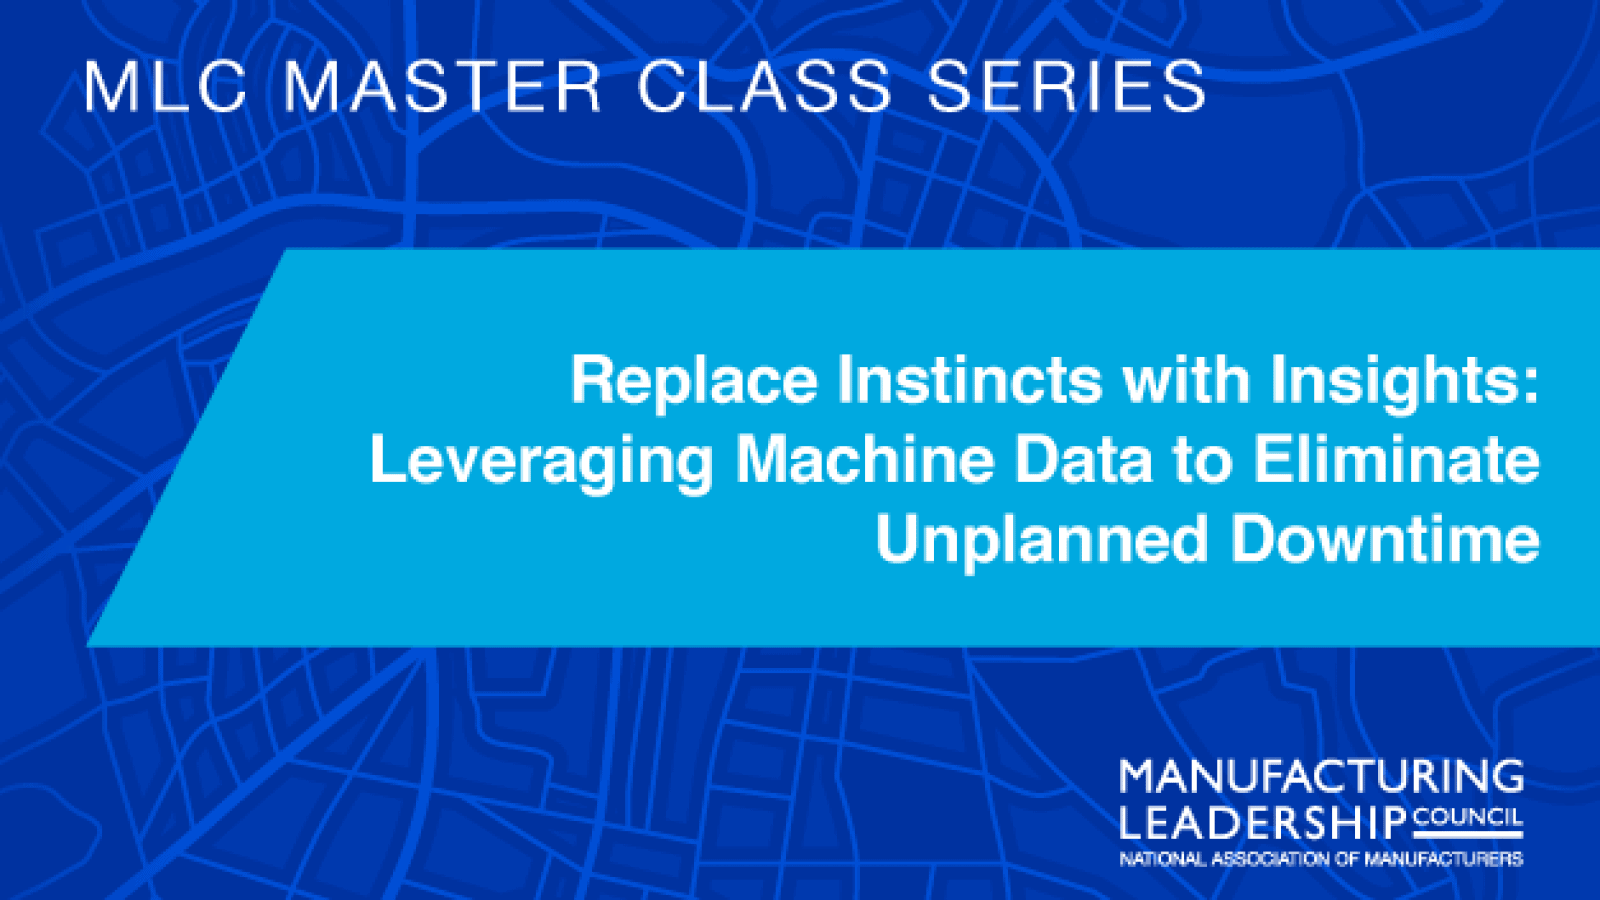 Replace Instincts with Insights: Leveraging Machine Data to Eliminate Unplanned Downtime